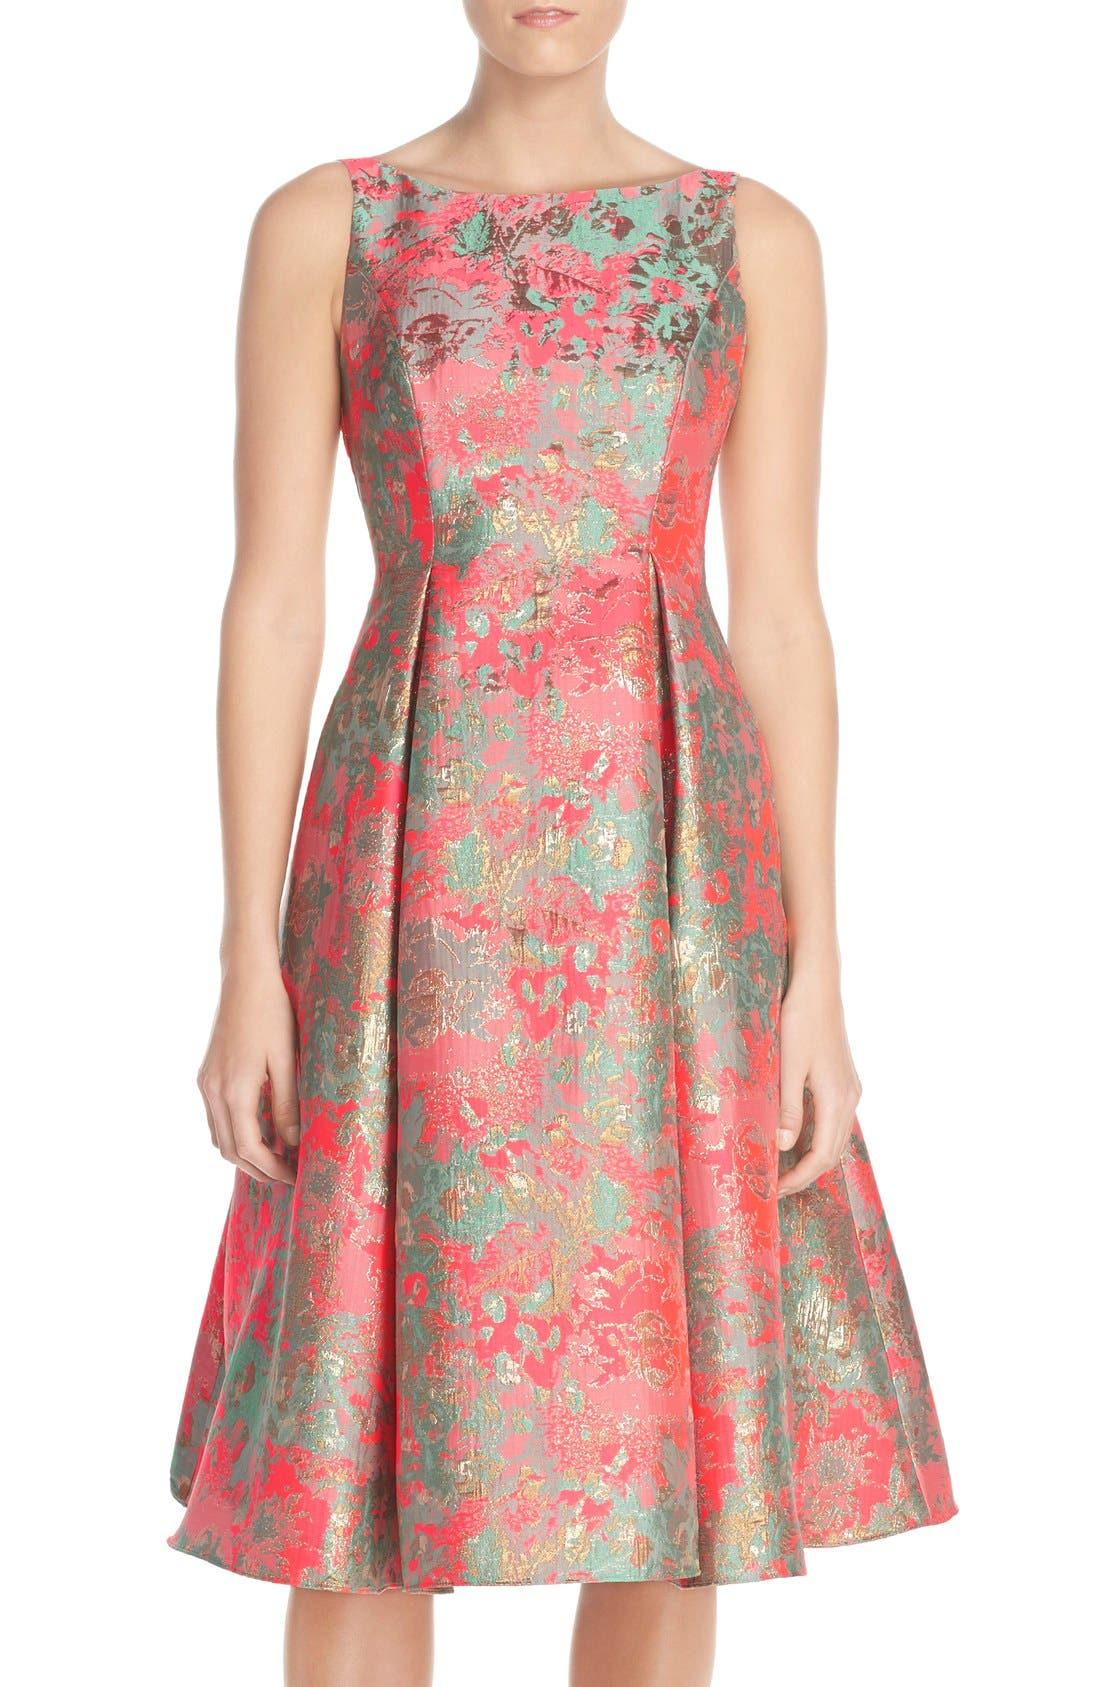 Main Image - Adrianna Papell Metallic Jacquard Fit & Flare Dress